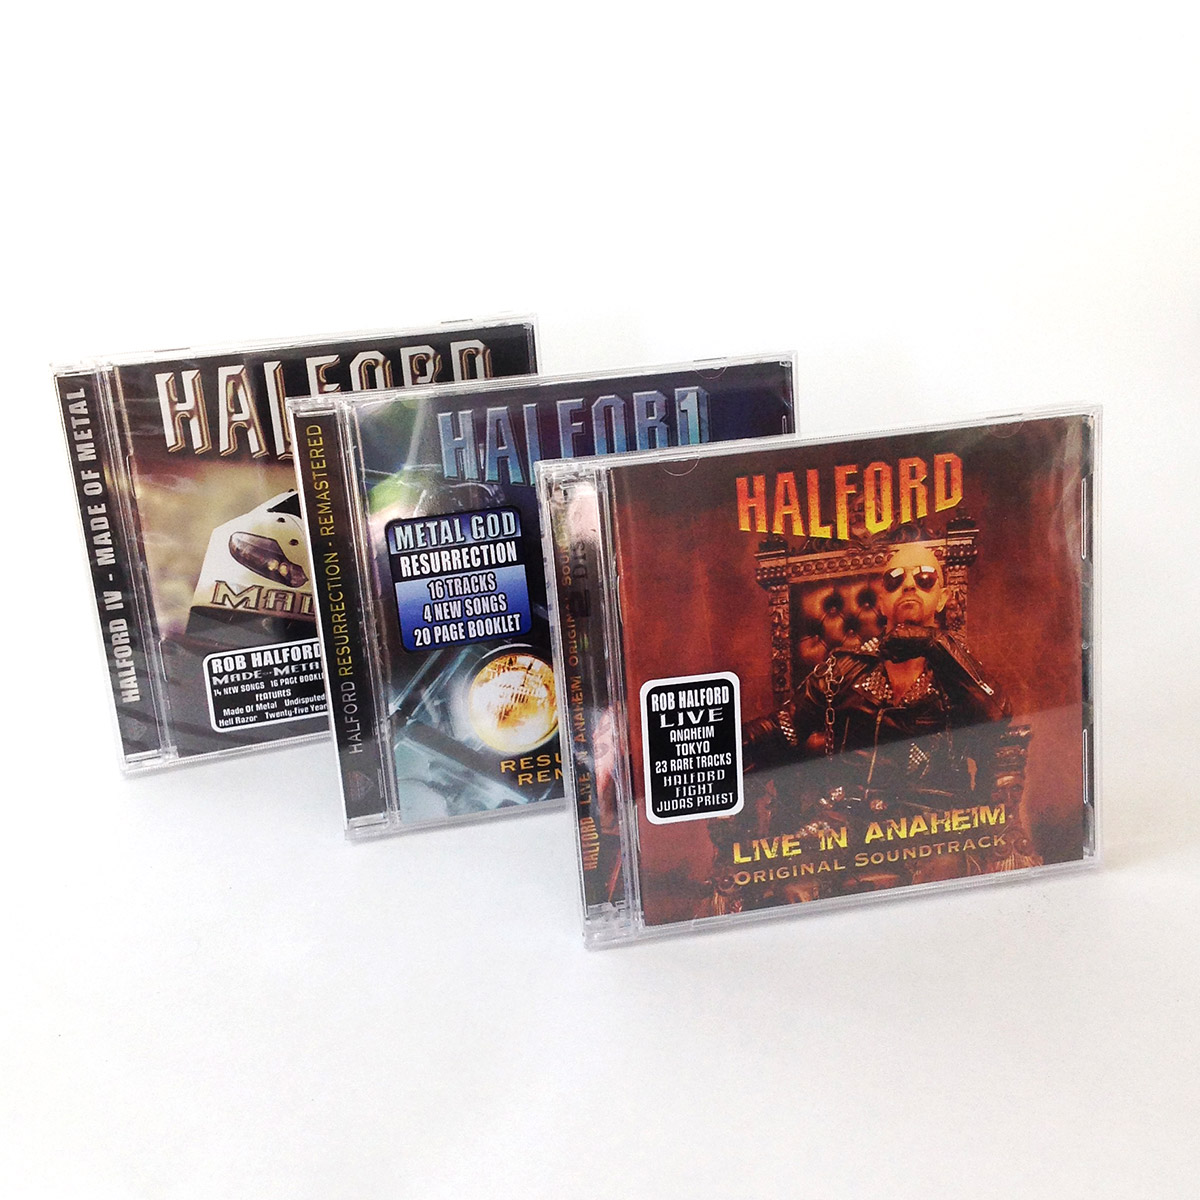 Halford CD Jewel Cases